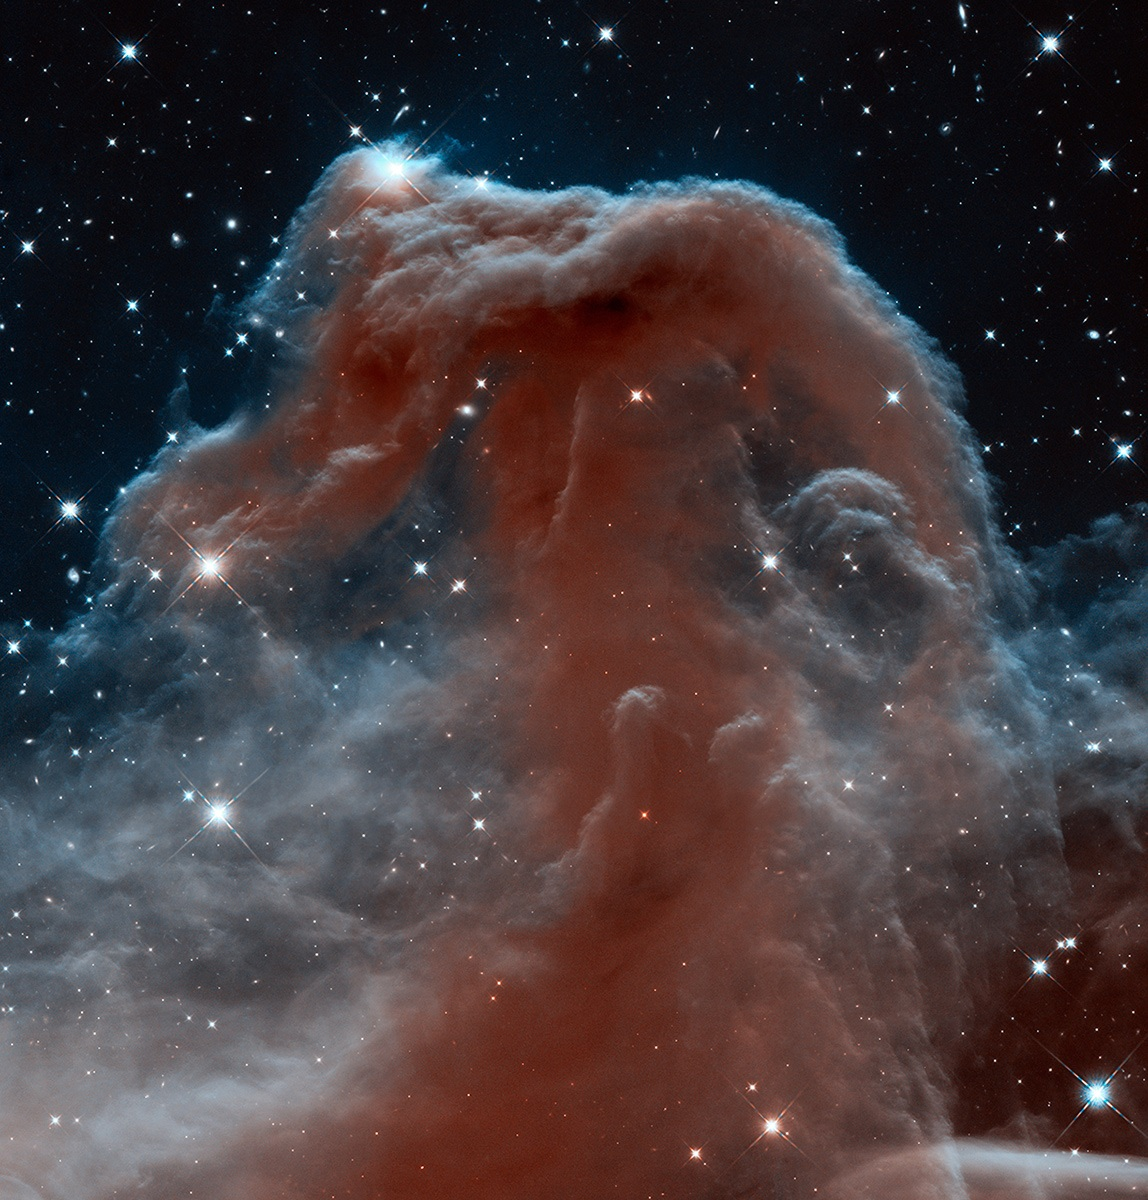 The rich tapestry of the Horsehead Nebula pops out against the backdrop of Milky Way stars and distant galaxies that are easily seen in infrared light. Image: NASA, ESA, and the Hubble Heritage Team (STScI/AURA)